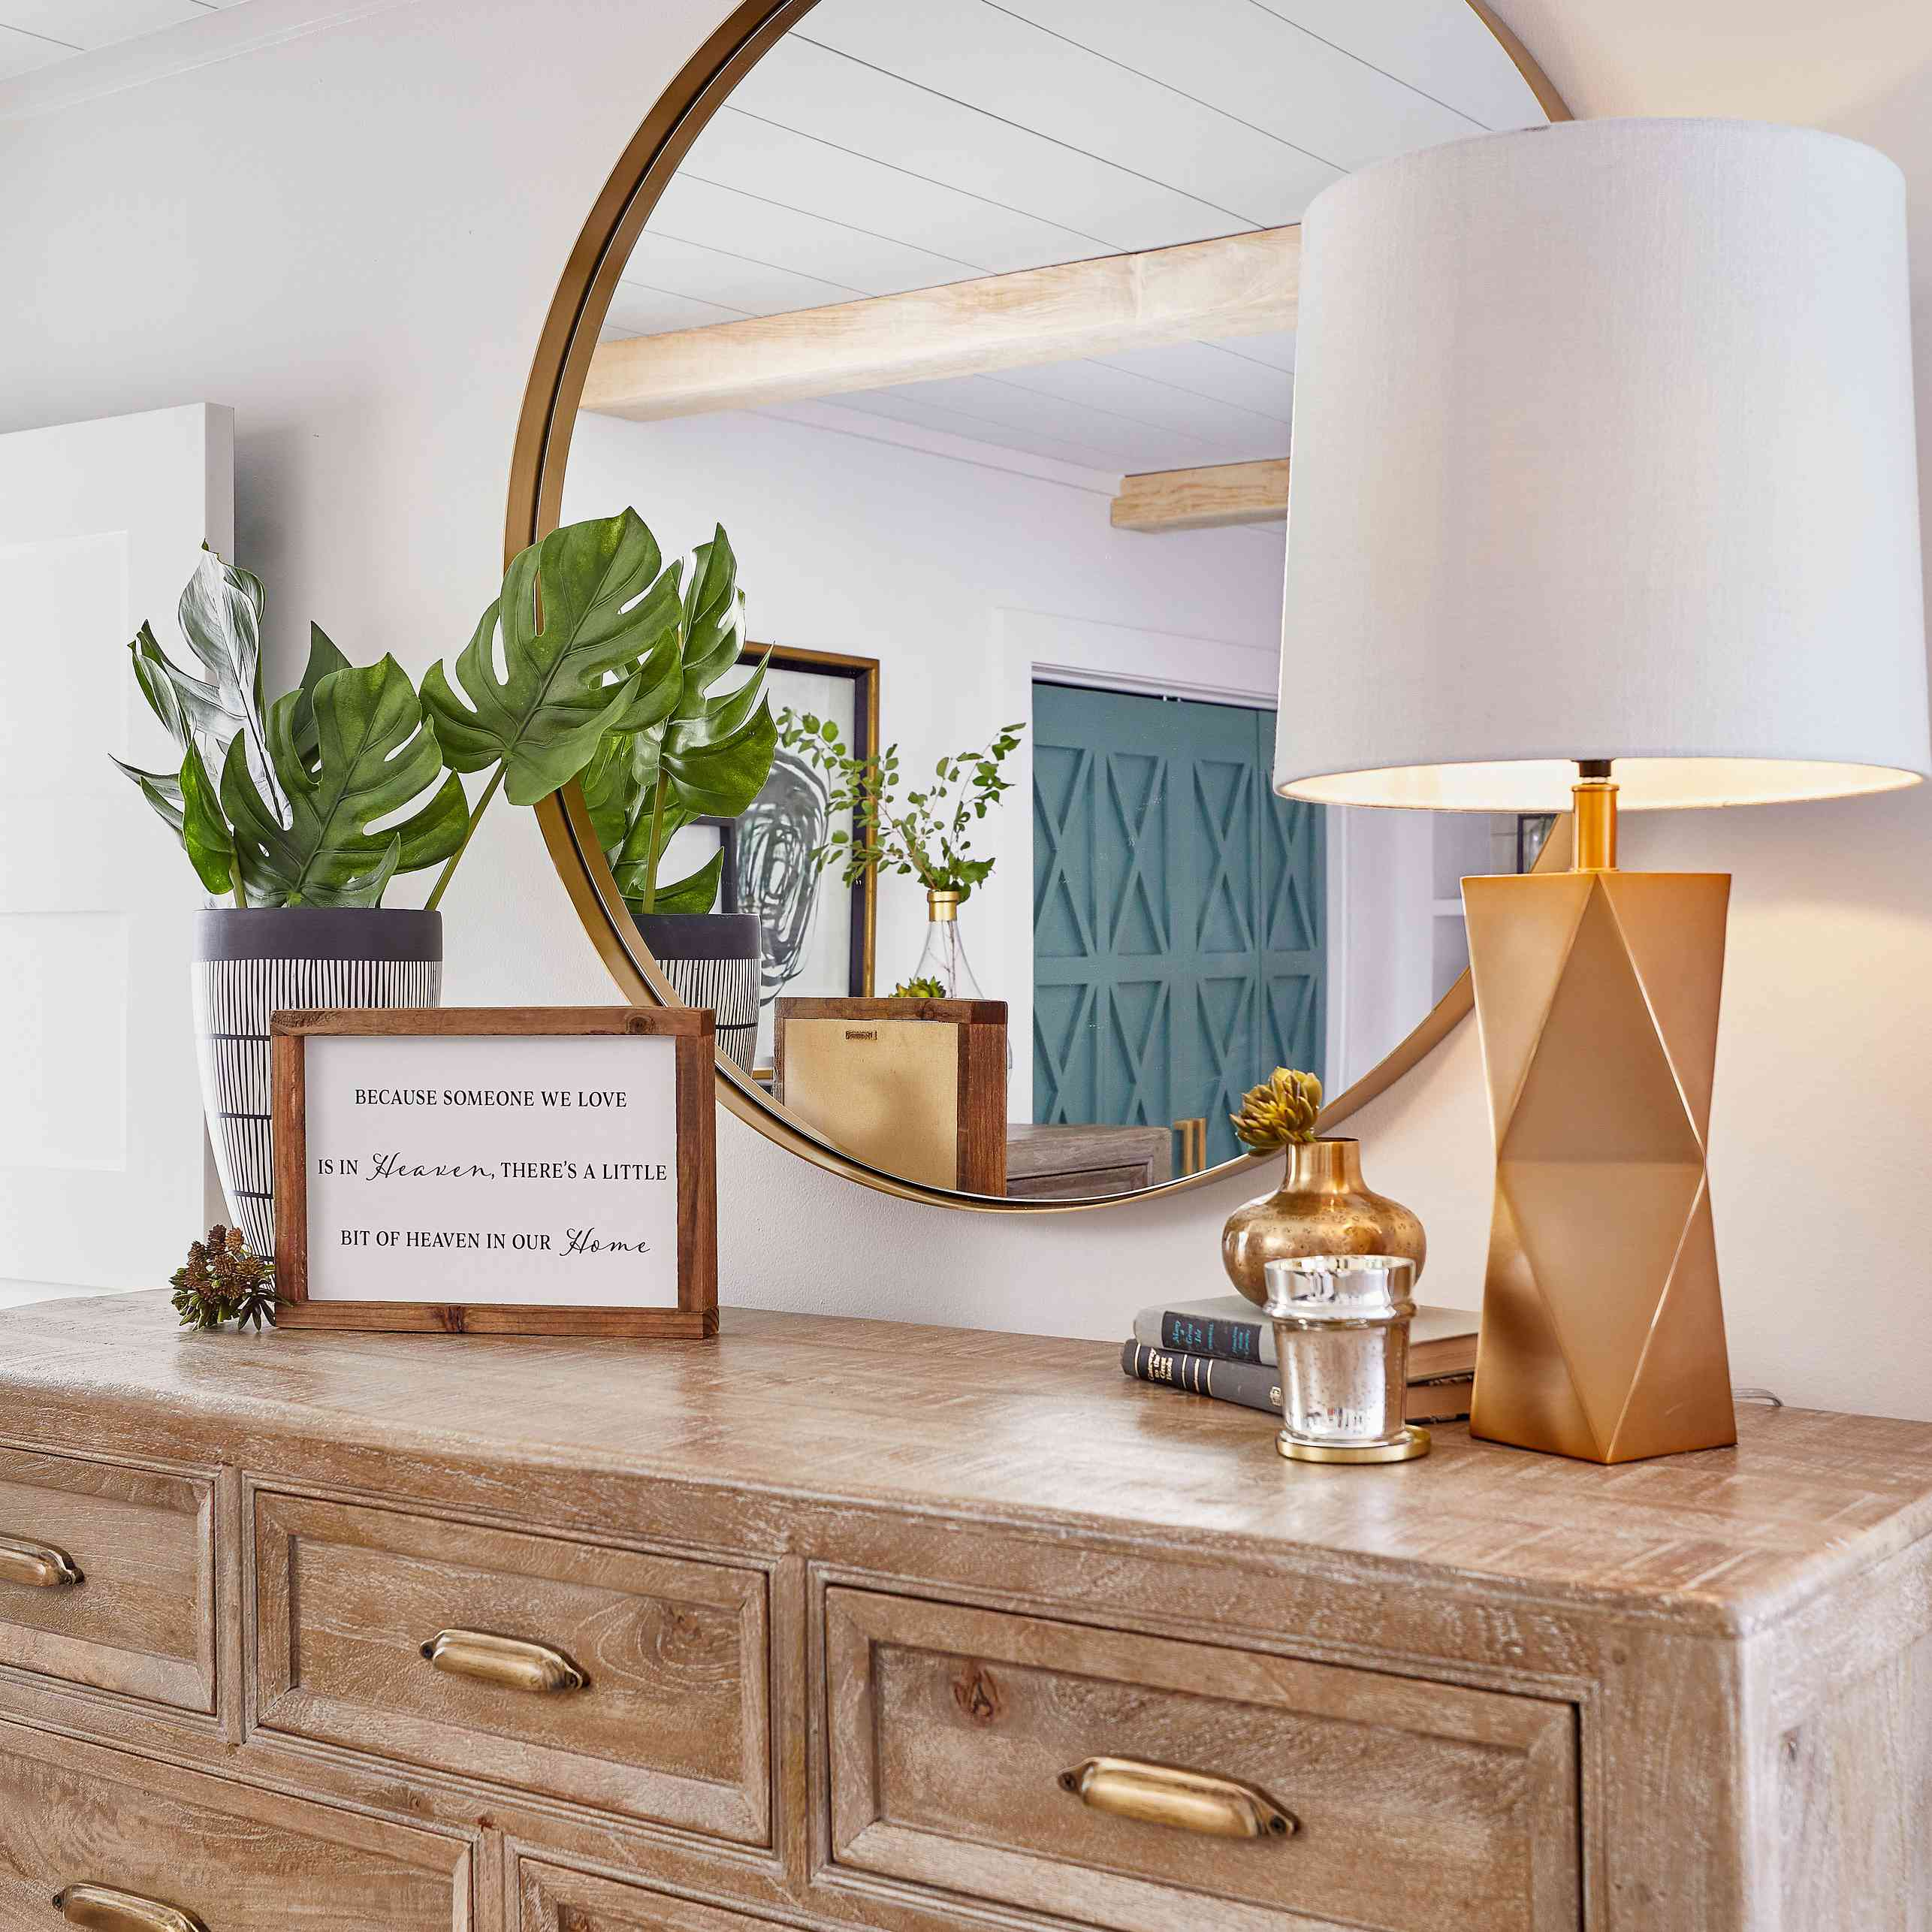 Dresser with gold lamp and rustic decor.